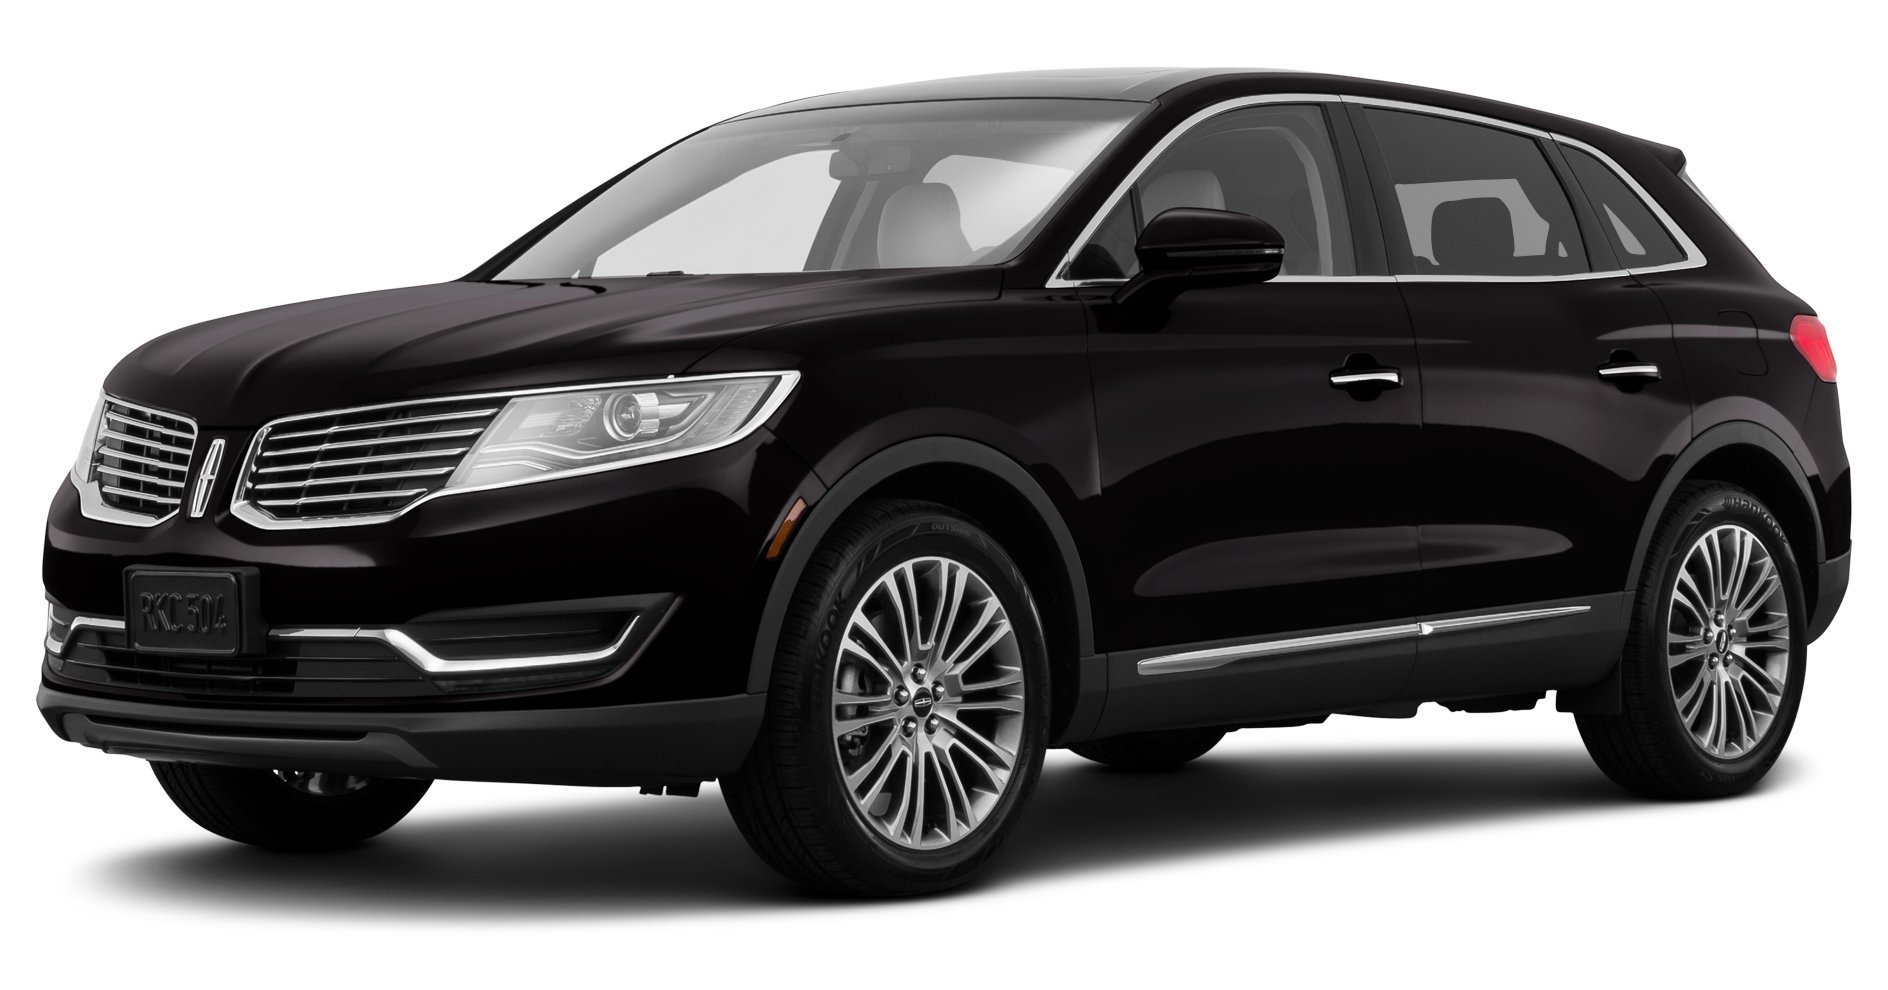 Amazon.com: 2016 Lincoln MKX Reviews, Images, and Specs: Vehicles